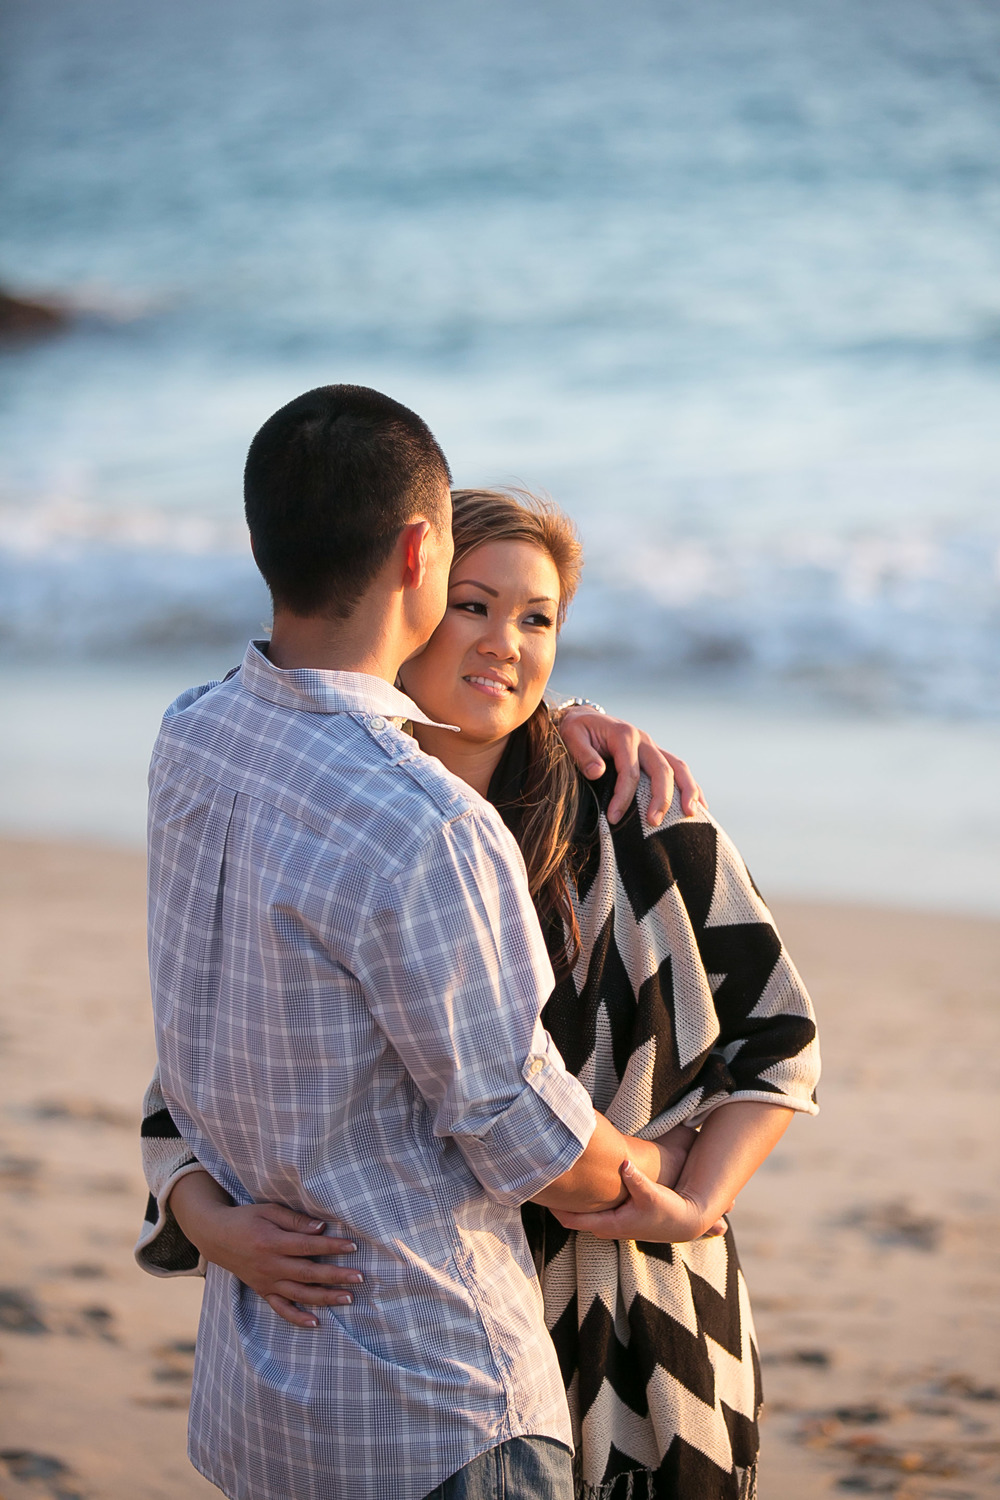 20131020_CHRIS_JEFF_MALIBU_BEACH_ENGAGEMENT_CHRIS_HOLT_PHOTOGRAPHY_008.jpg